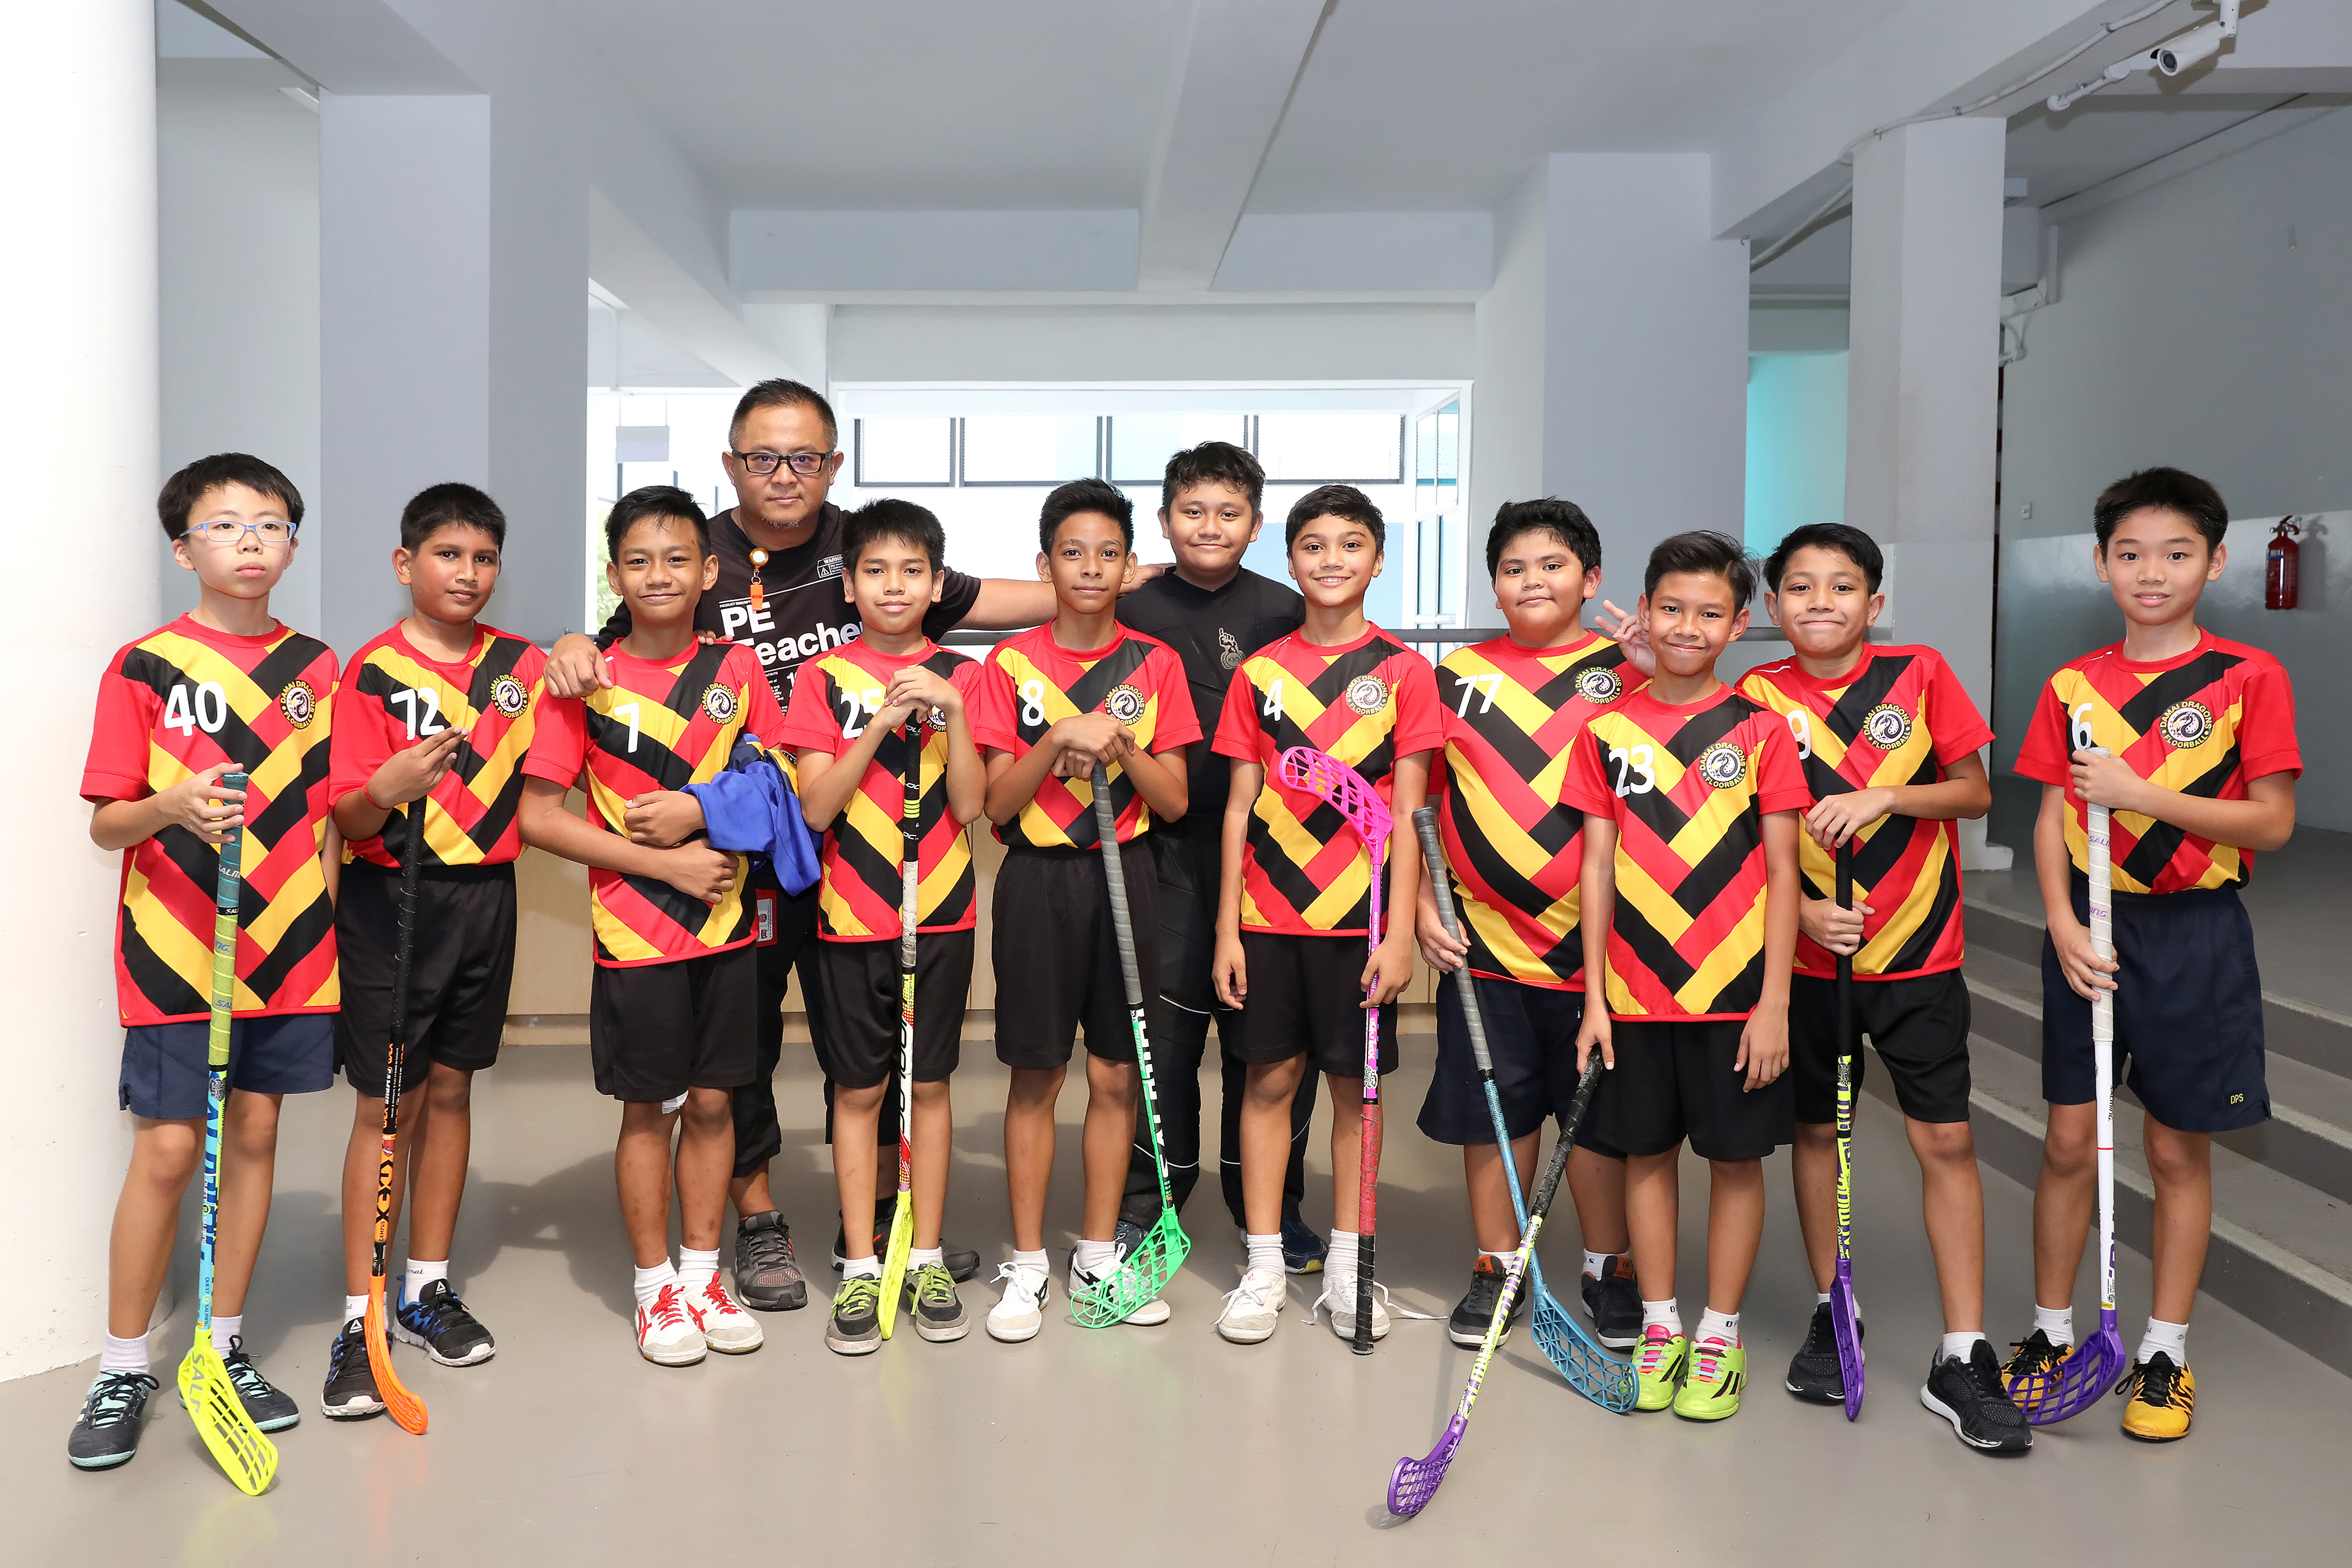 FloorBall_Damar_Boy_00100.JPG